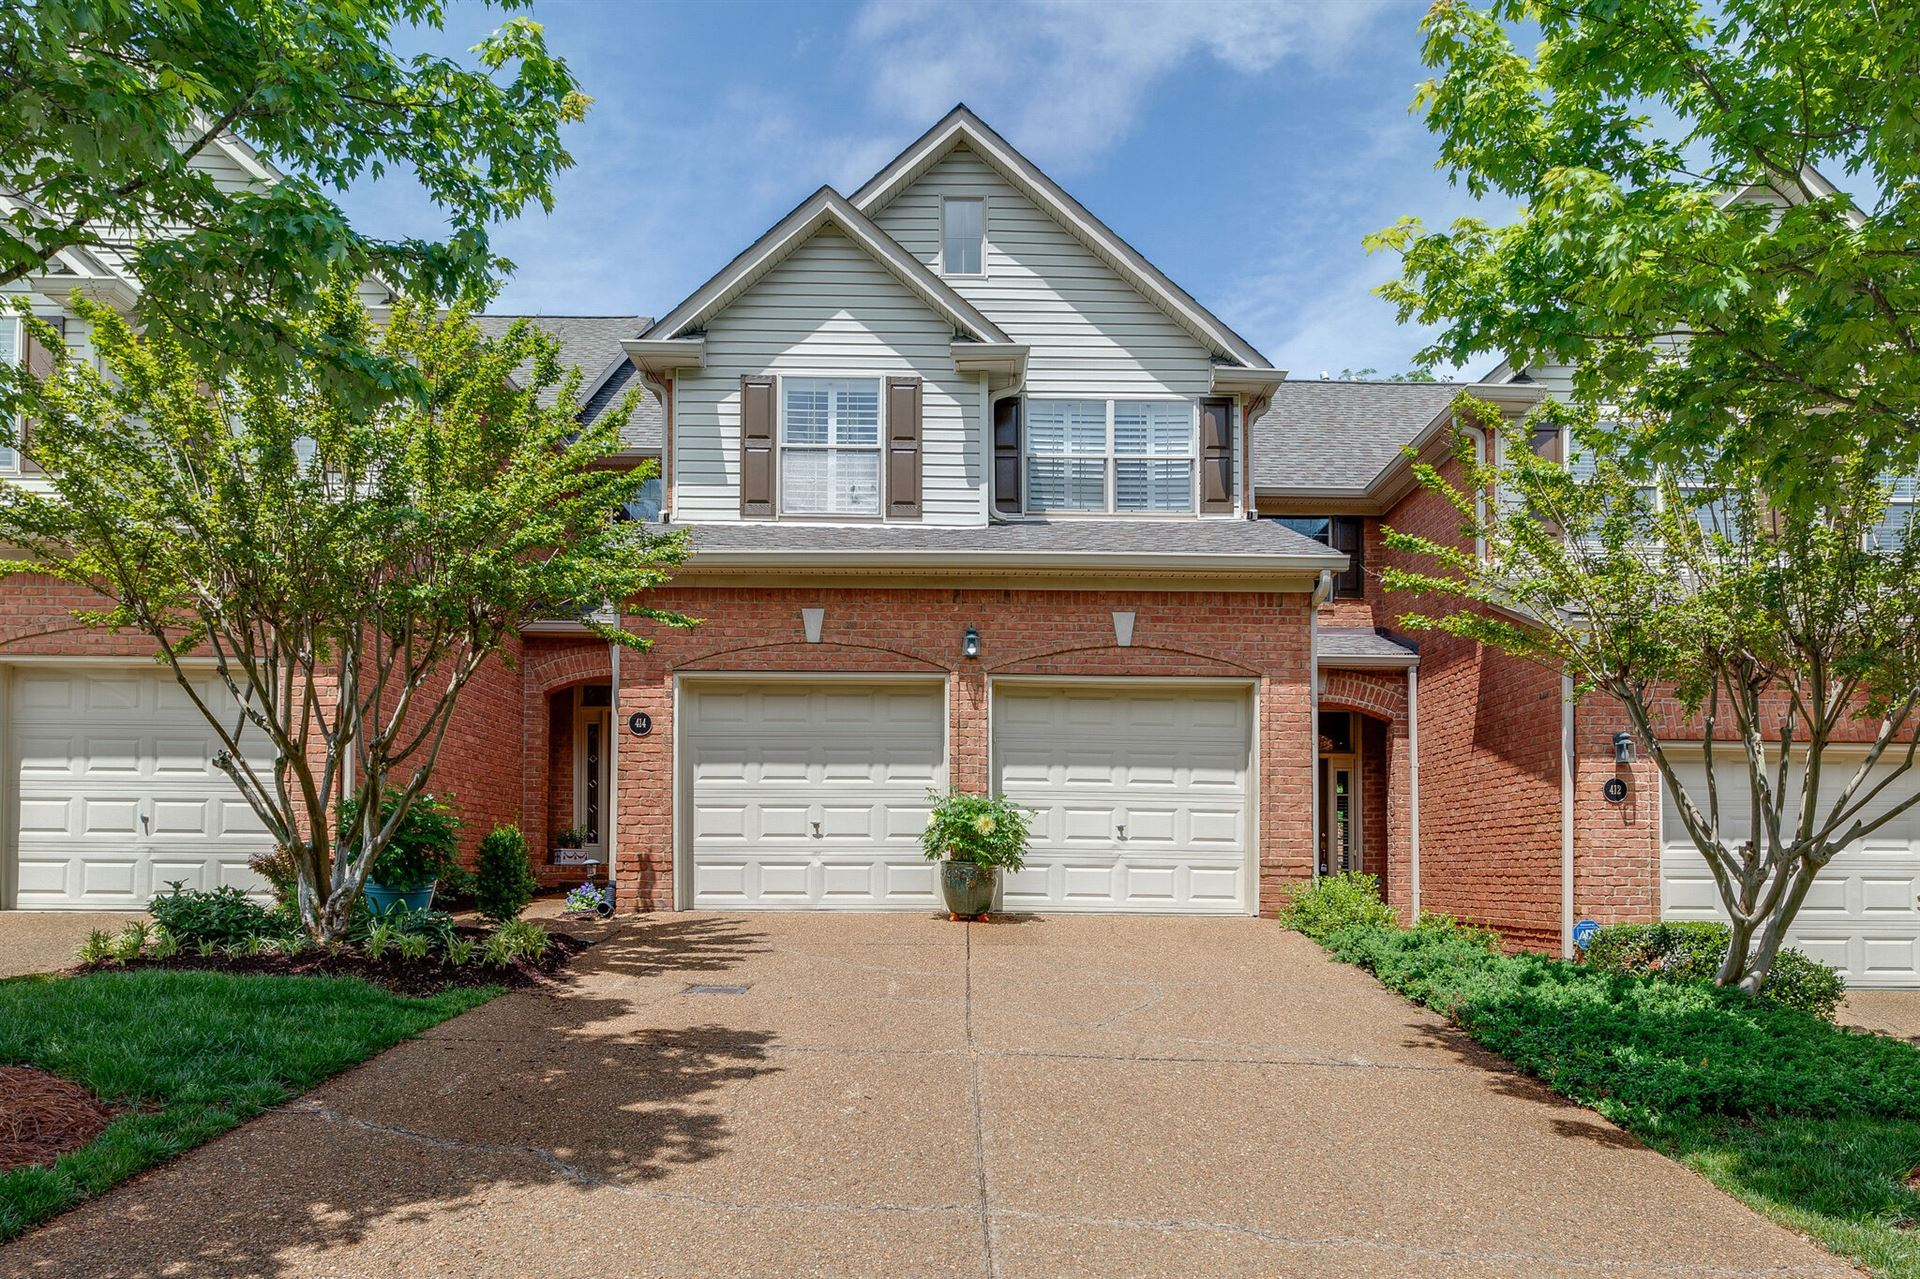 641 Old Hickory Blvd #414, Brentwood, TN 37027 - MLS#: 2250744